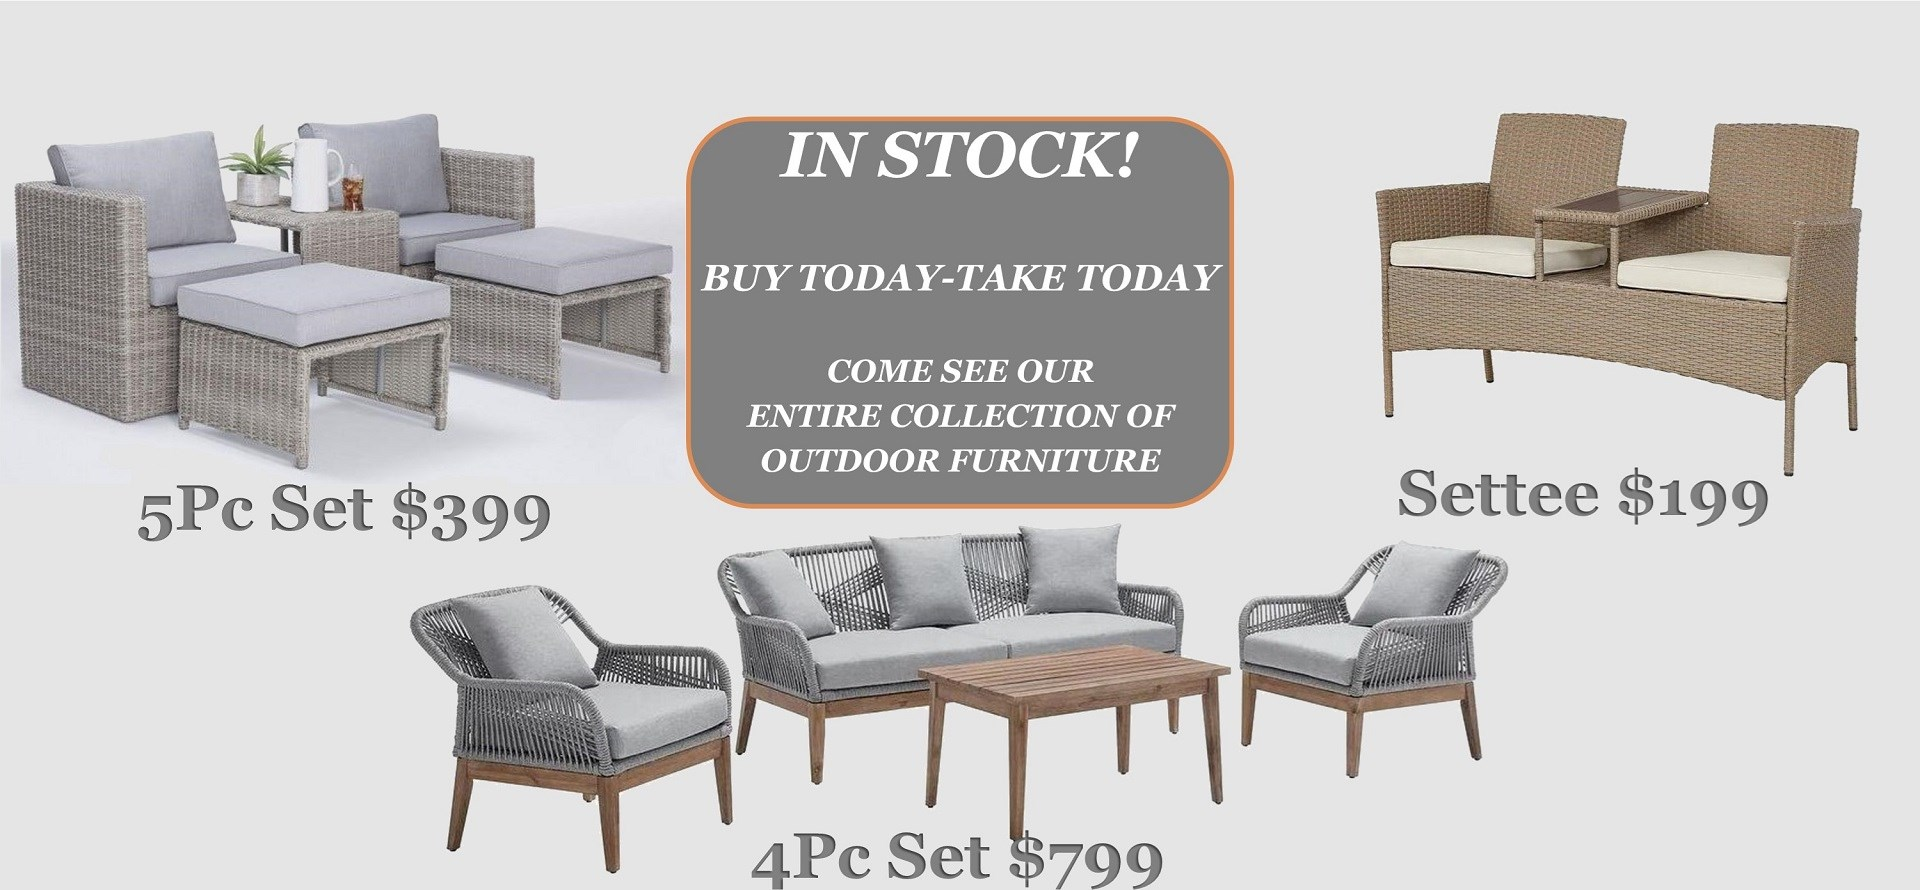 In Stock Patio Buy Today take today